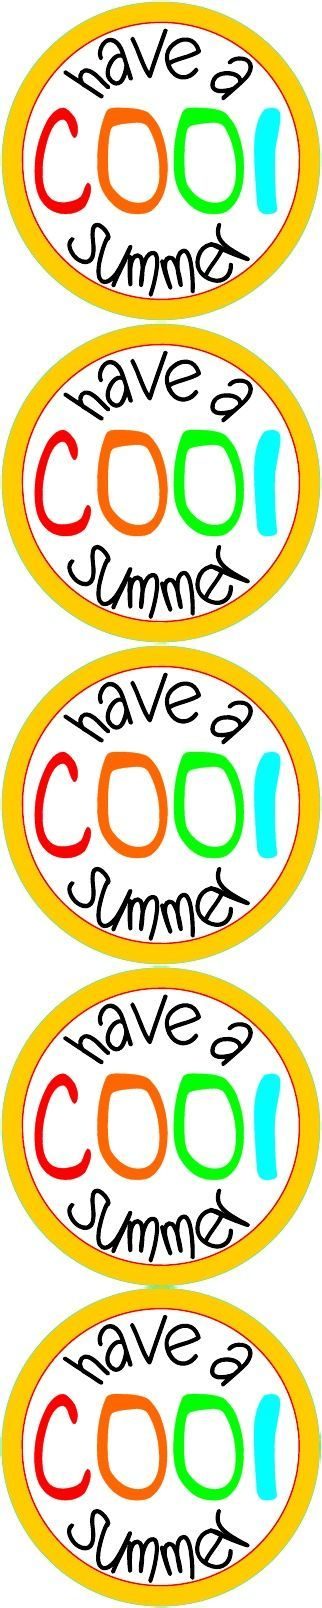 Have a COOL Summer printable. Give with ice pops